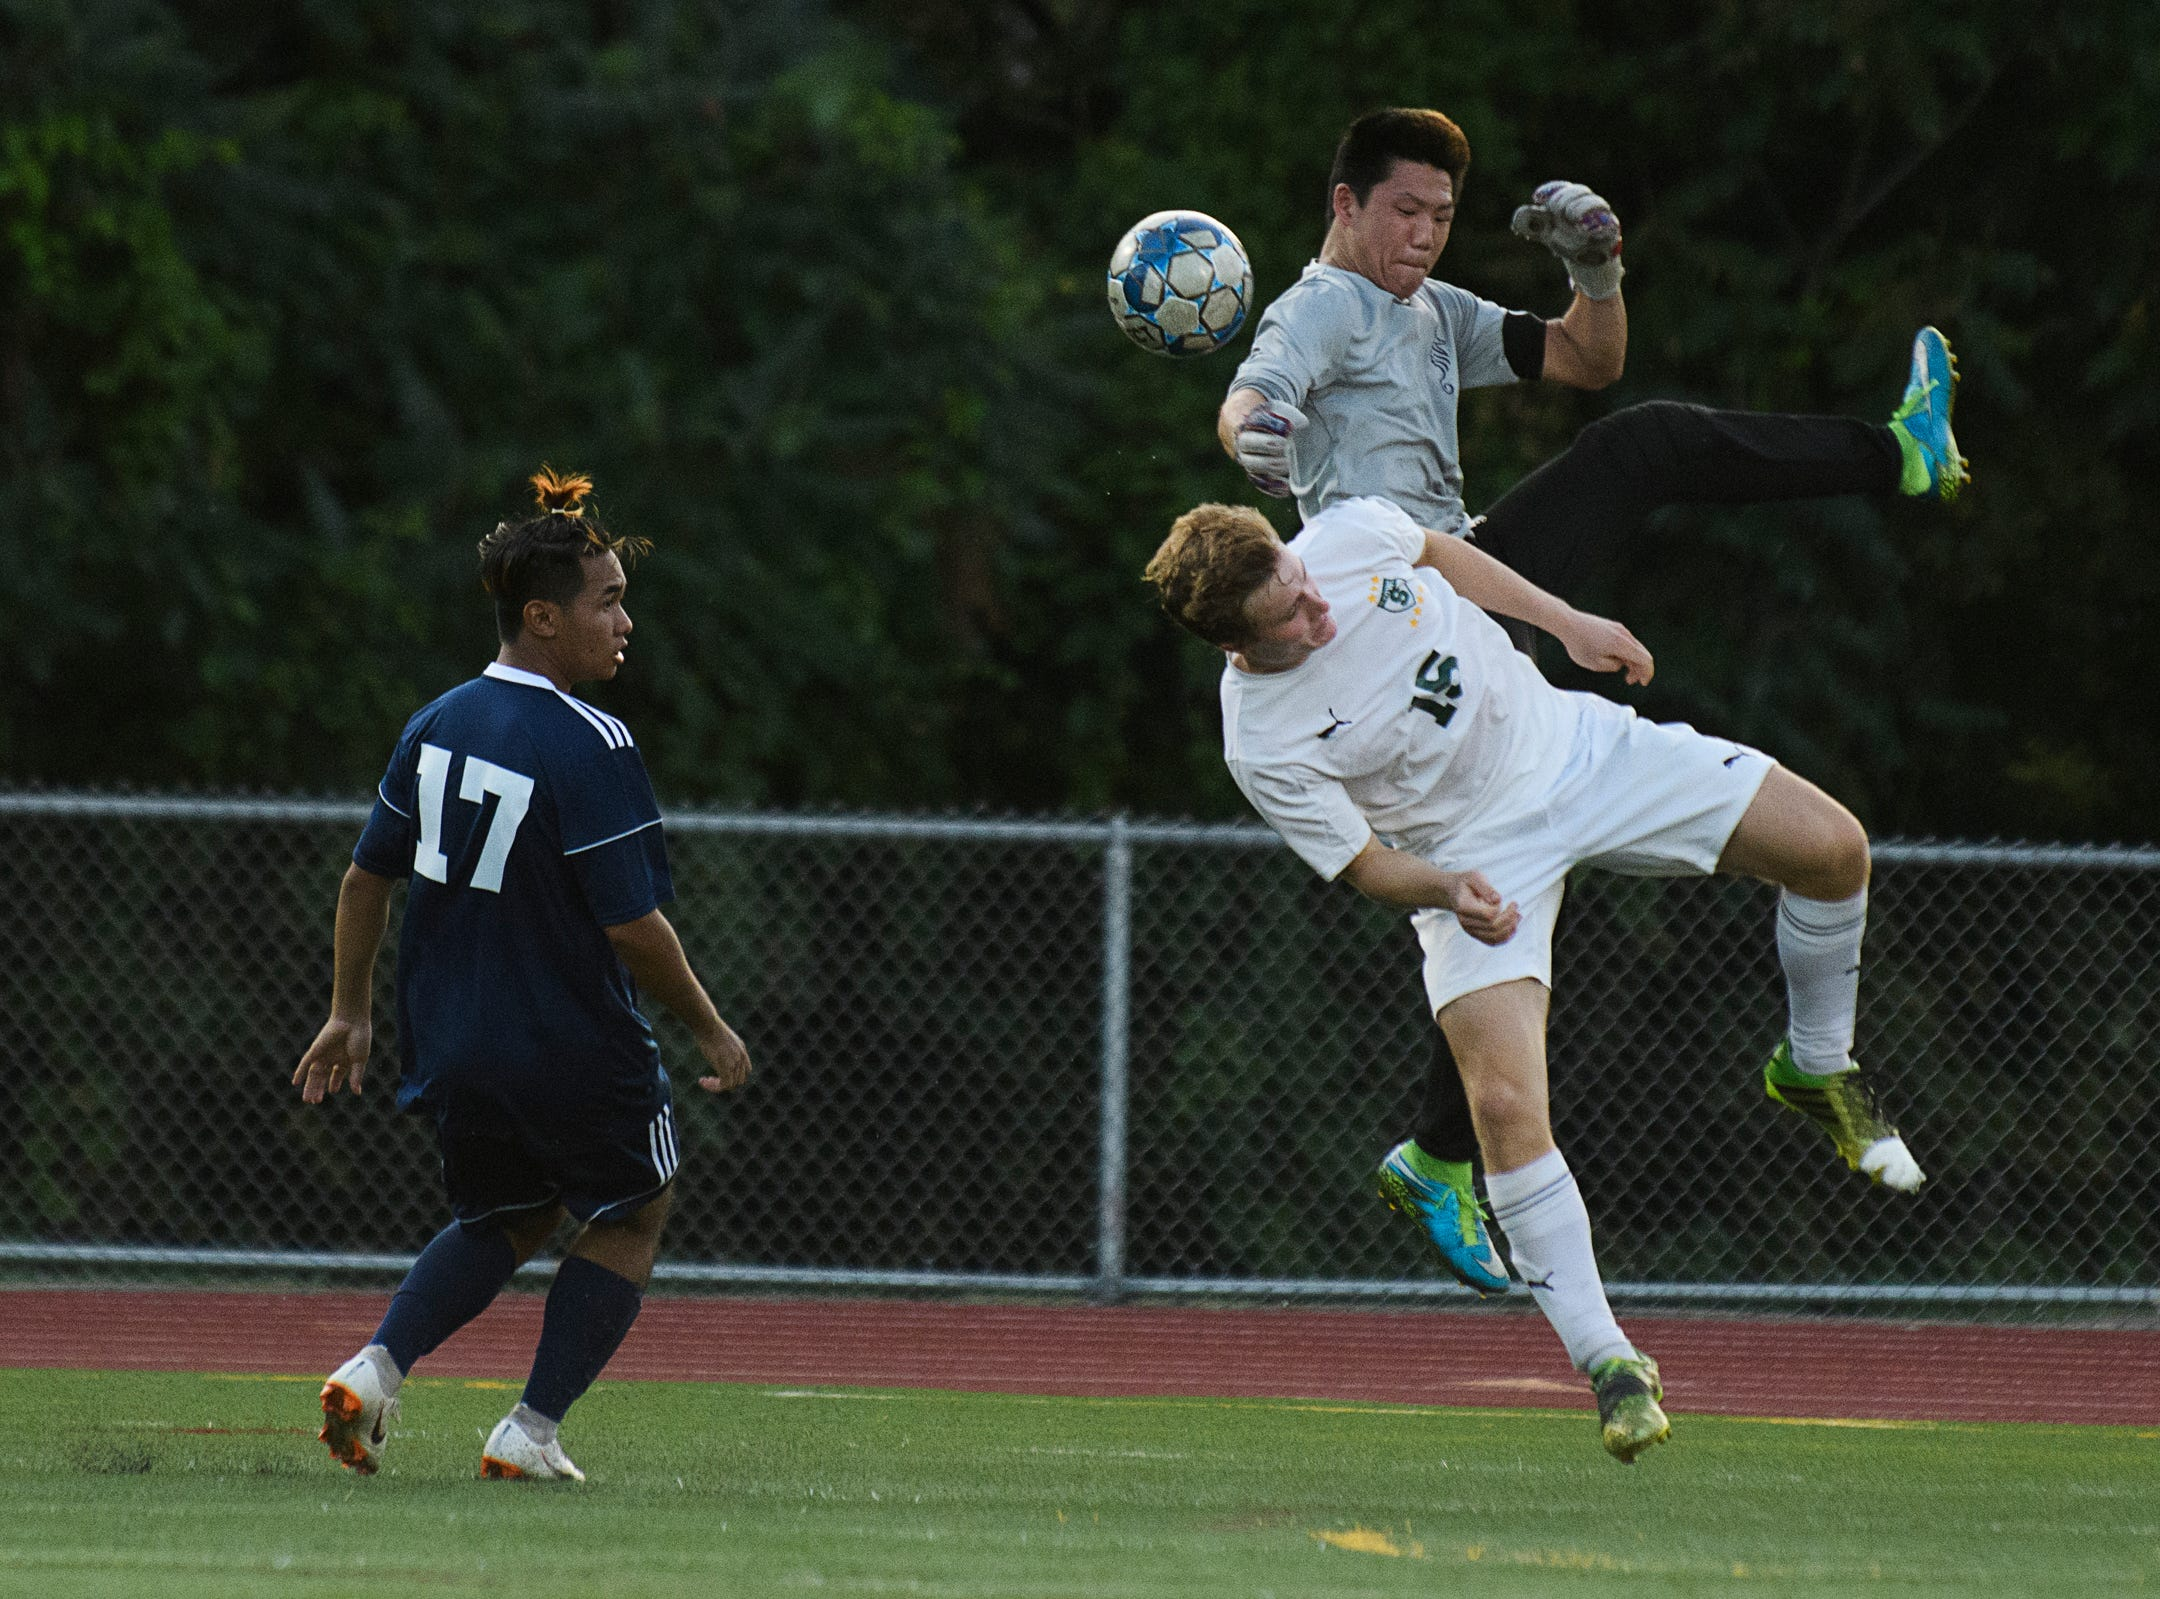 Stowe's Jace Boerger (15) crashes into Burlington goalie Kiran Ghimire during the boys soccer game between Stowe and Burlington at Buck Hard field on Wednesday night September 5, 2018 in Burlington.